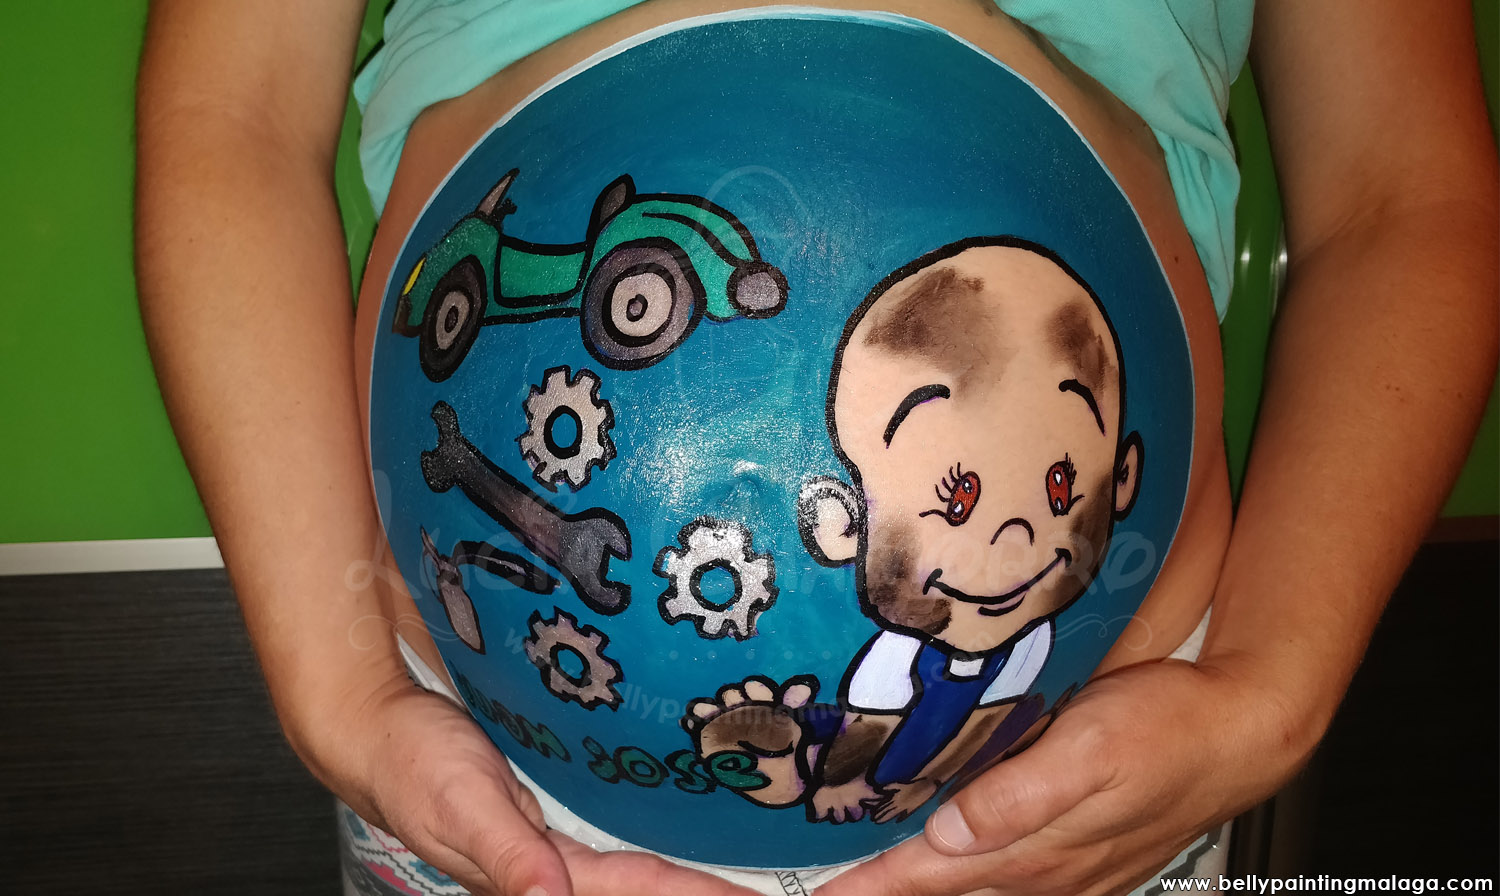 Belly Painting Oficios